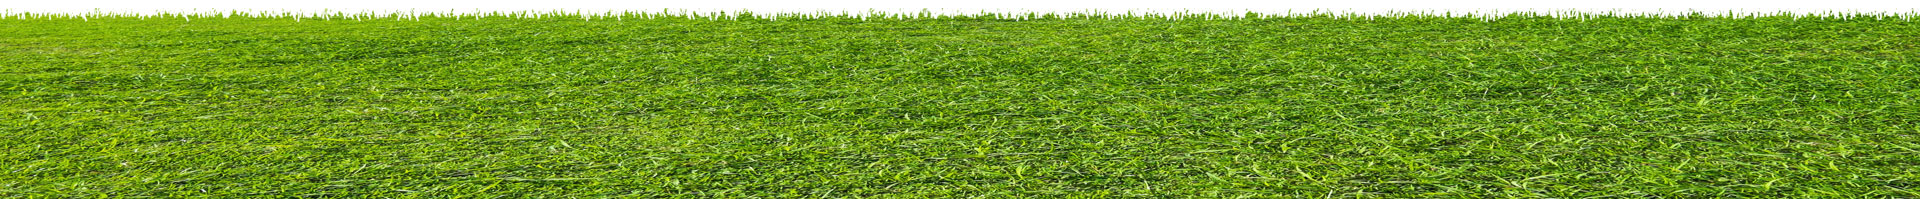 Background image of grass